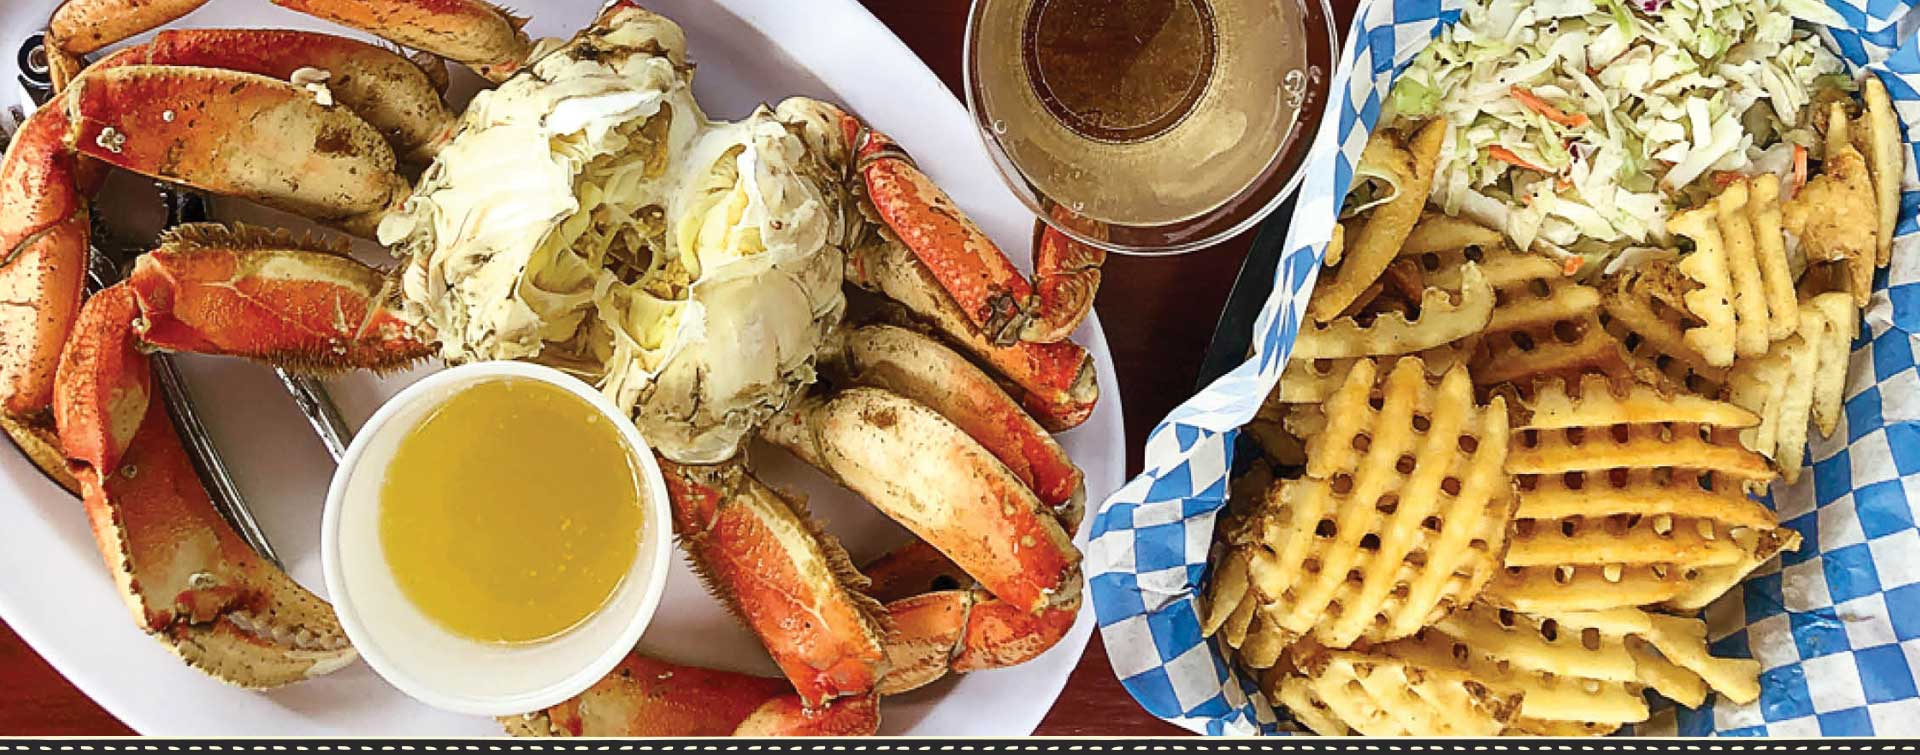 Fisherman's Market Dungeness Crab Dinner with Fries and Coleslaw